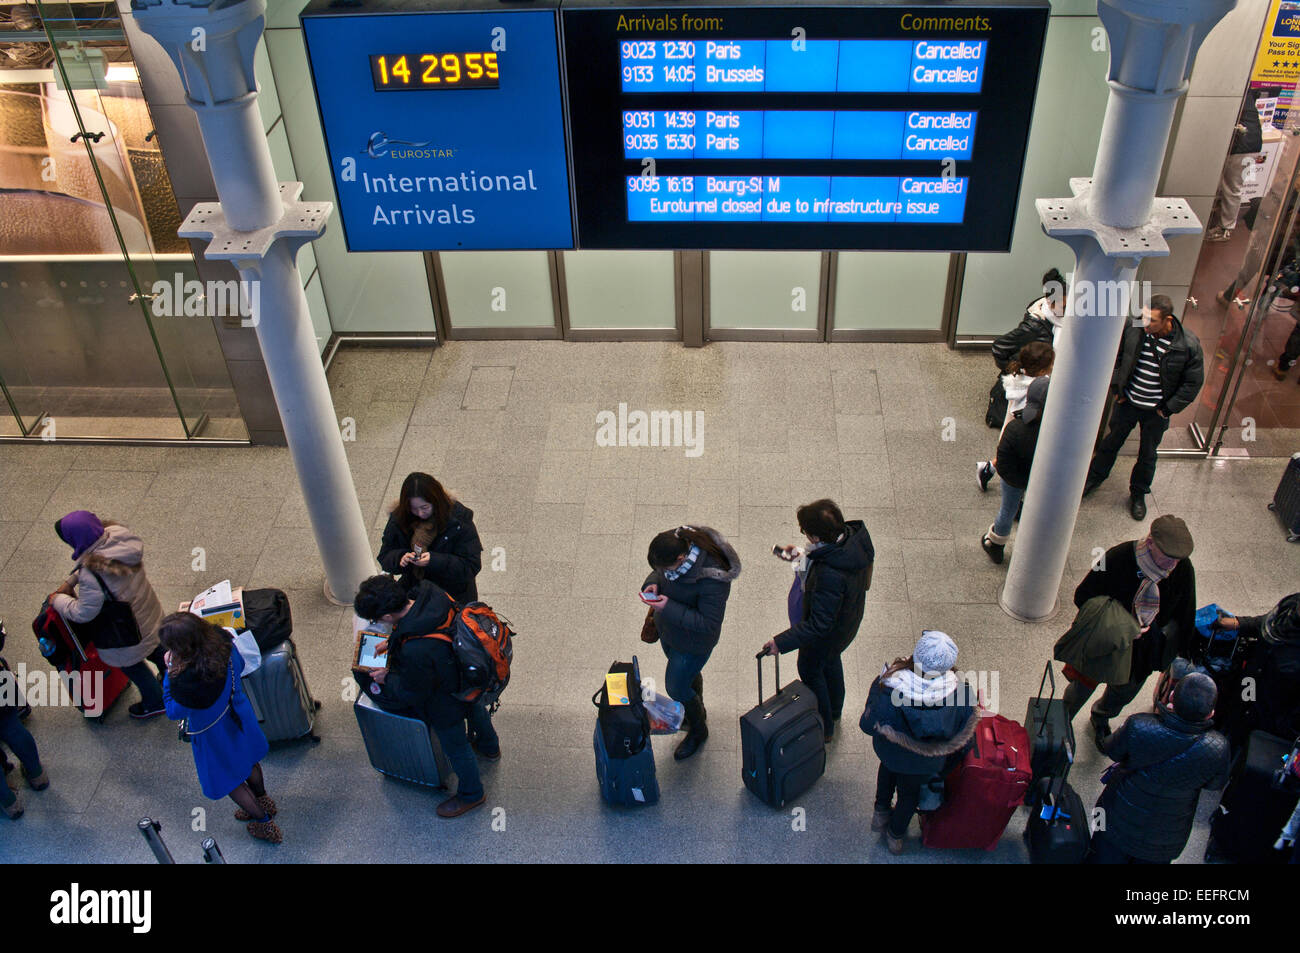 London, UK. 17th Jan, 2015. Passengers queue in St. Pancras Station, London, England UK as it is announced that Stock Photo